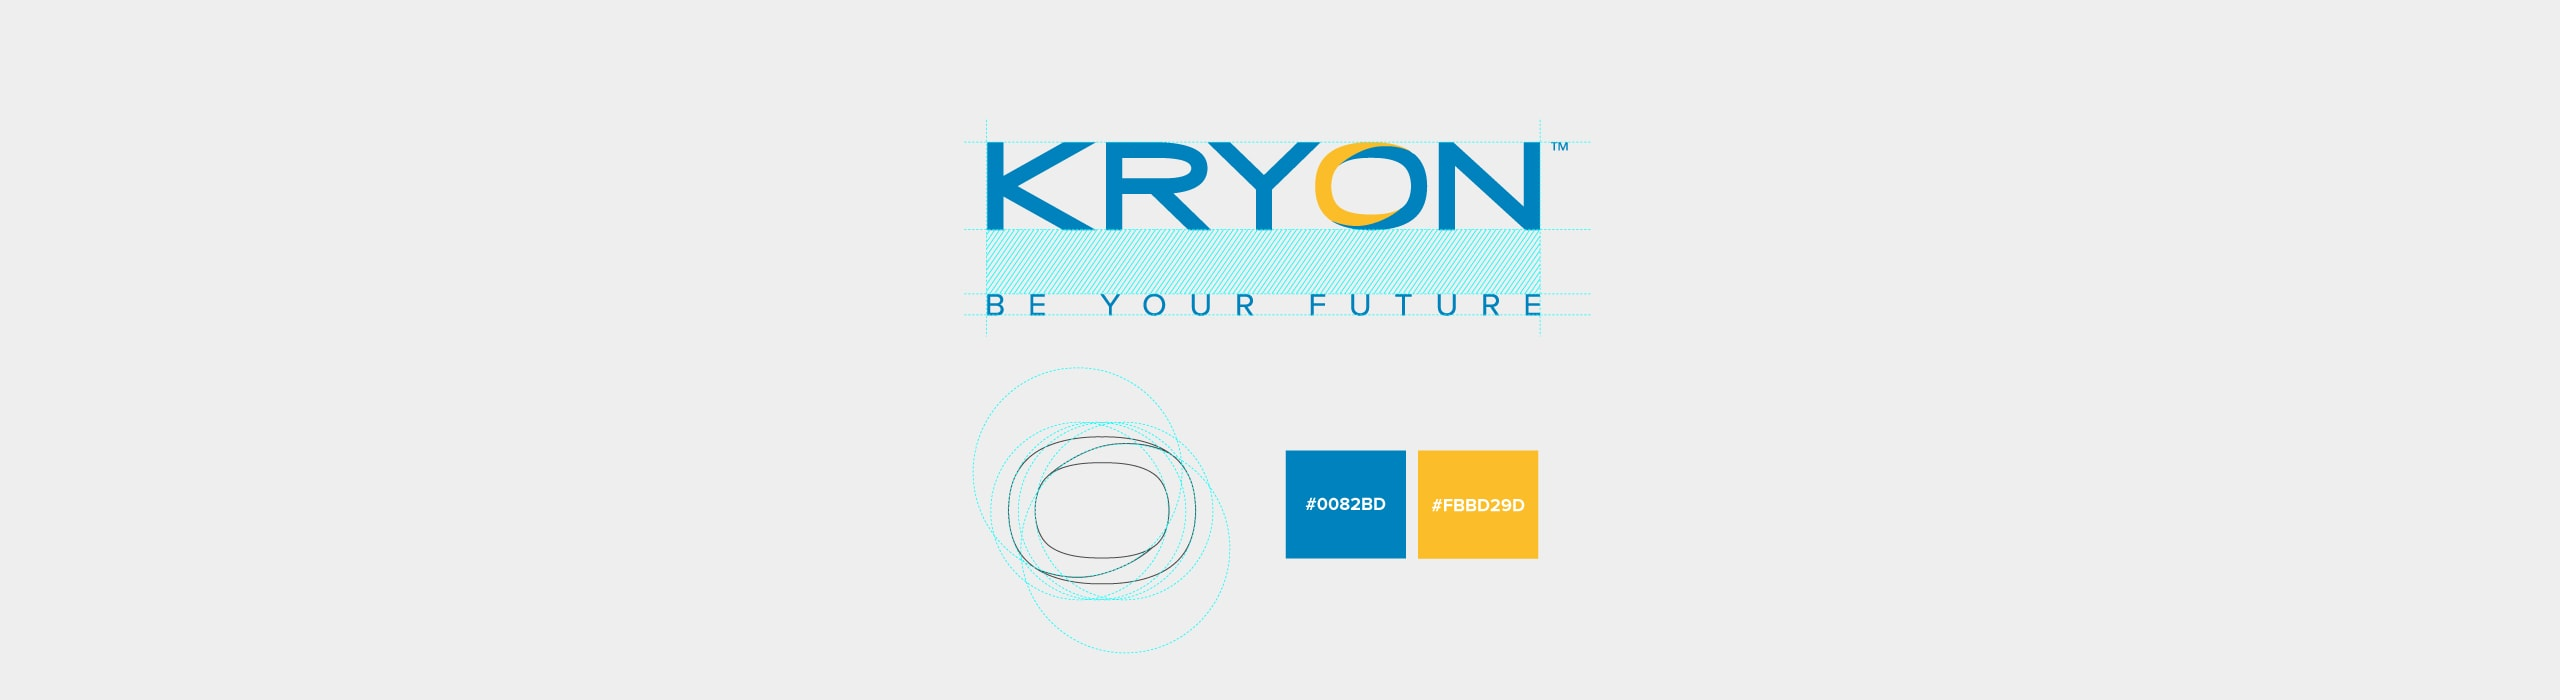 Kryon - 3 - Natie Branding Agency